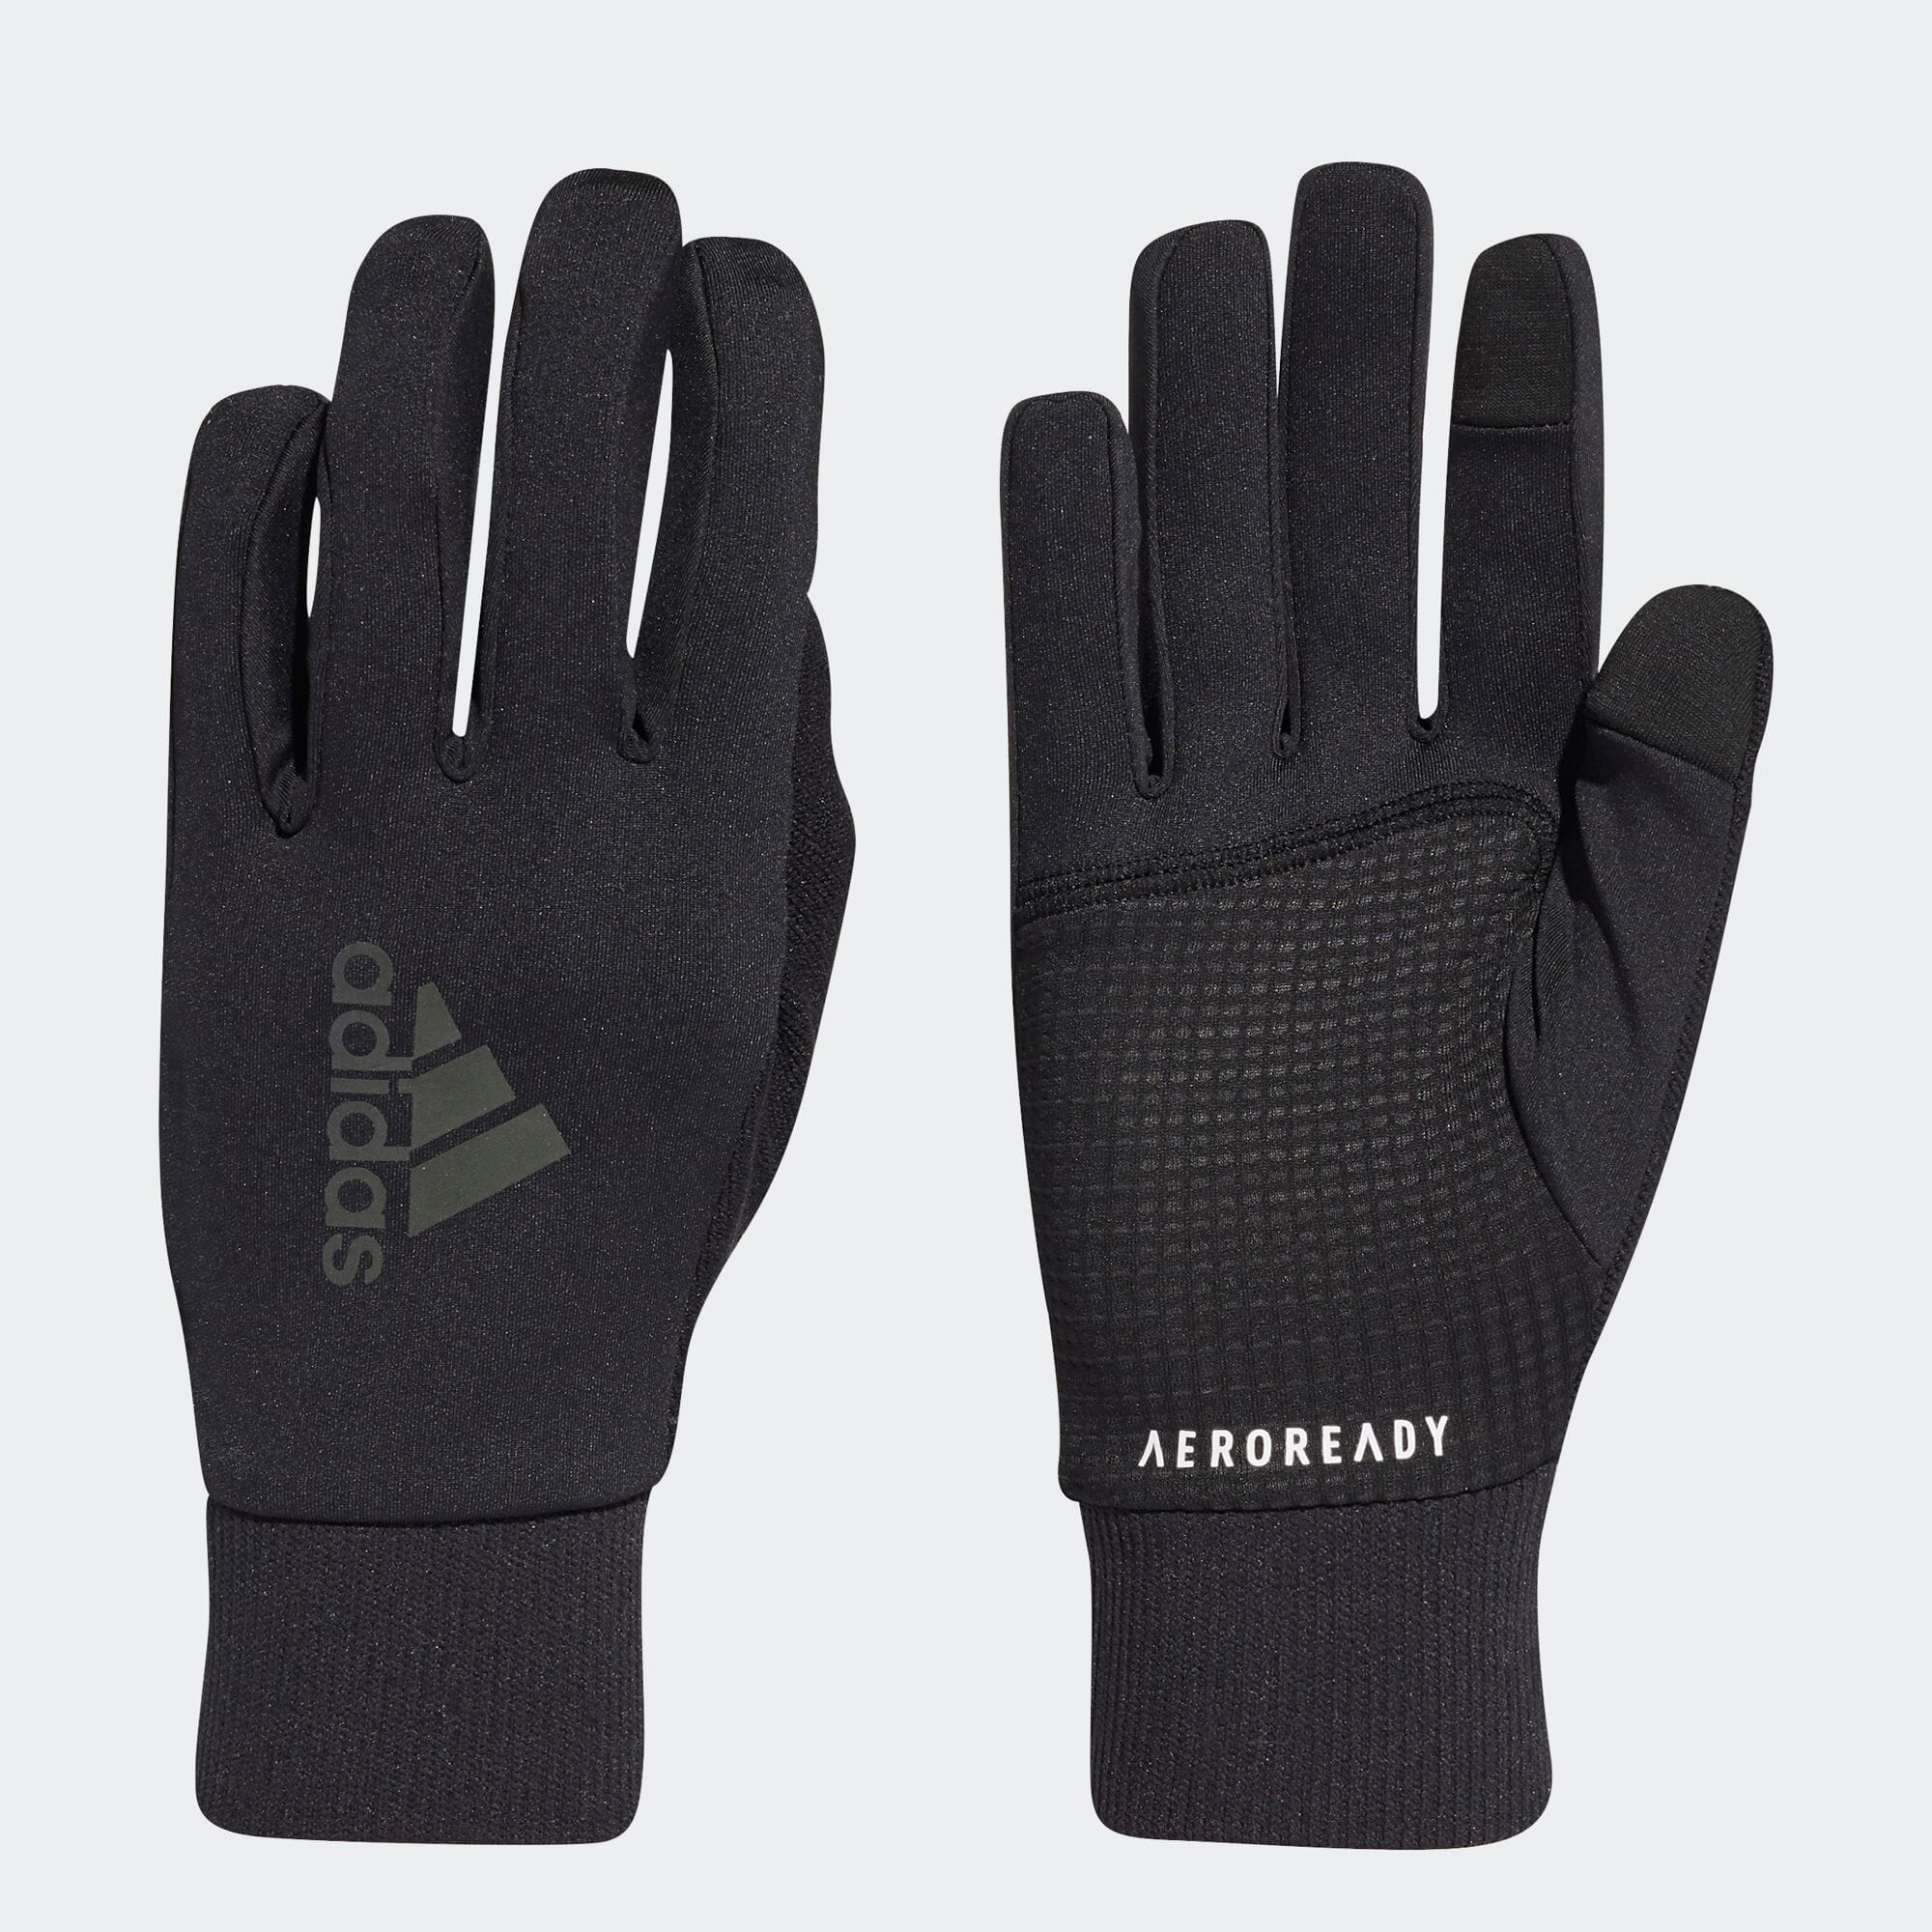 AEROREADY ランニンググローブ / AEROREADY Running Gloves